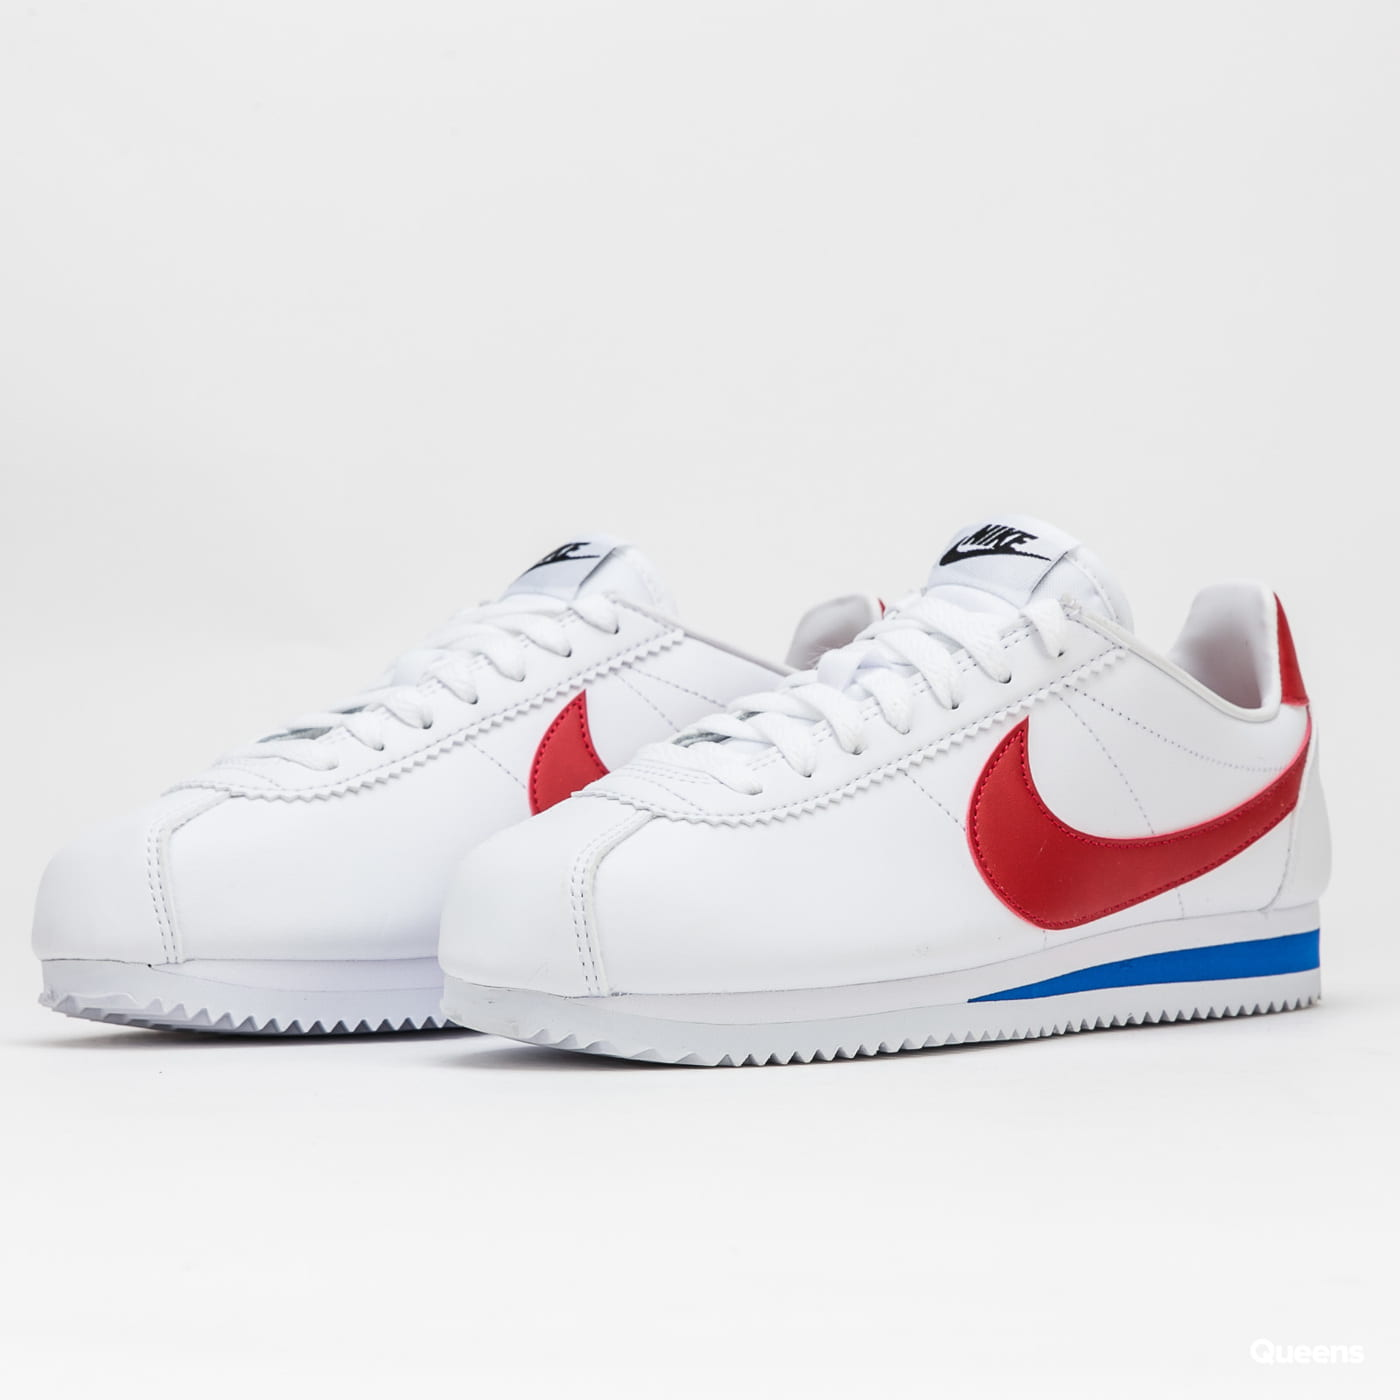 wholesale dealer 4b6f8 a6506 Nike WMNS Classic Cortez Leather white / varsity red